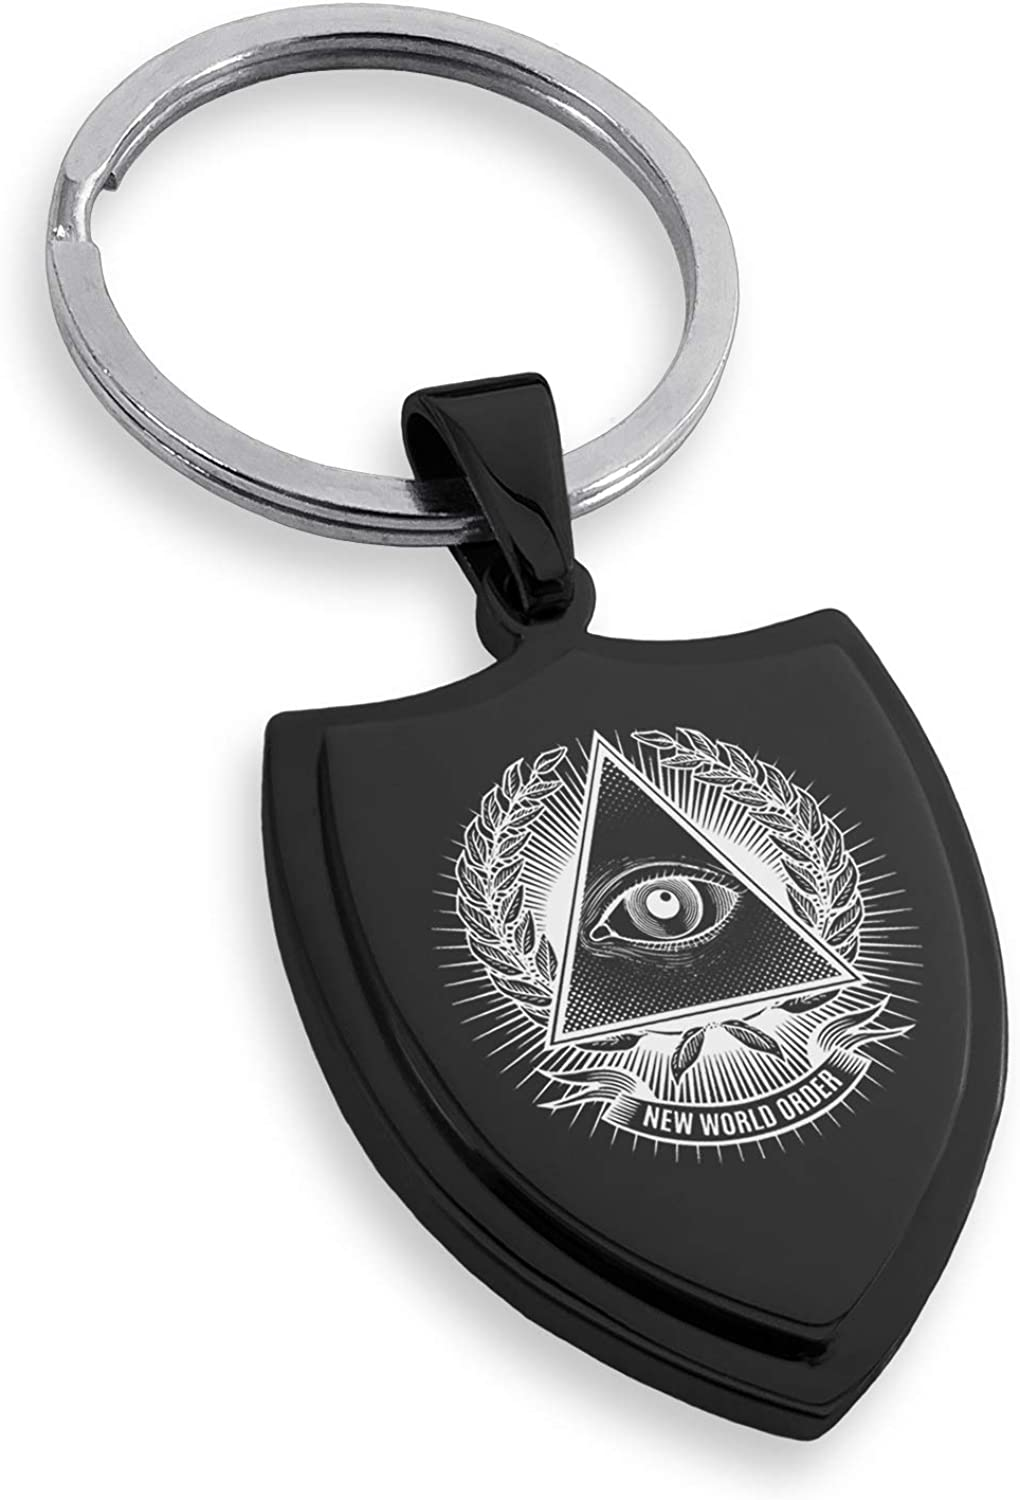 Tioneer Stainless Steel All Seeing Eye New World Order Shield Keychain Keyring